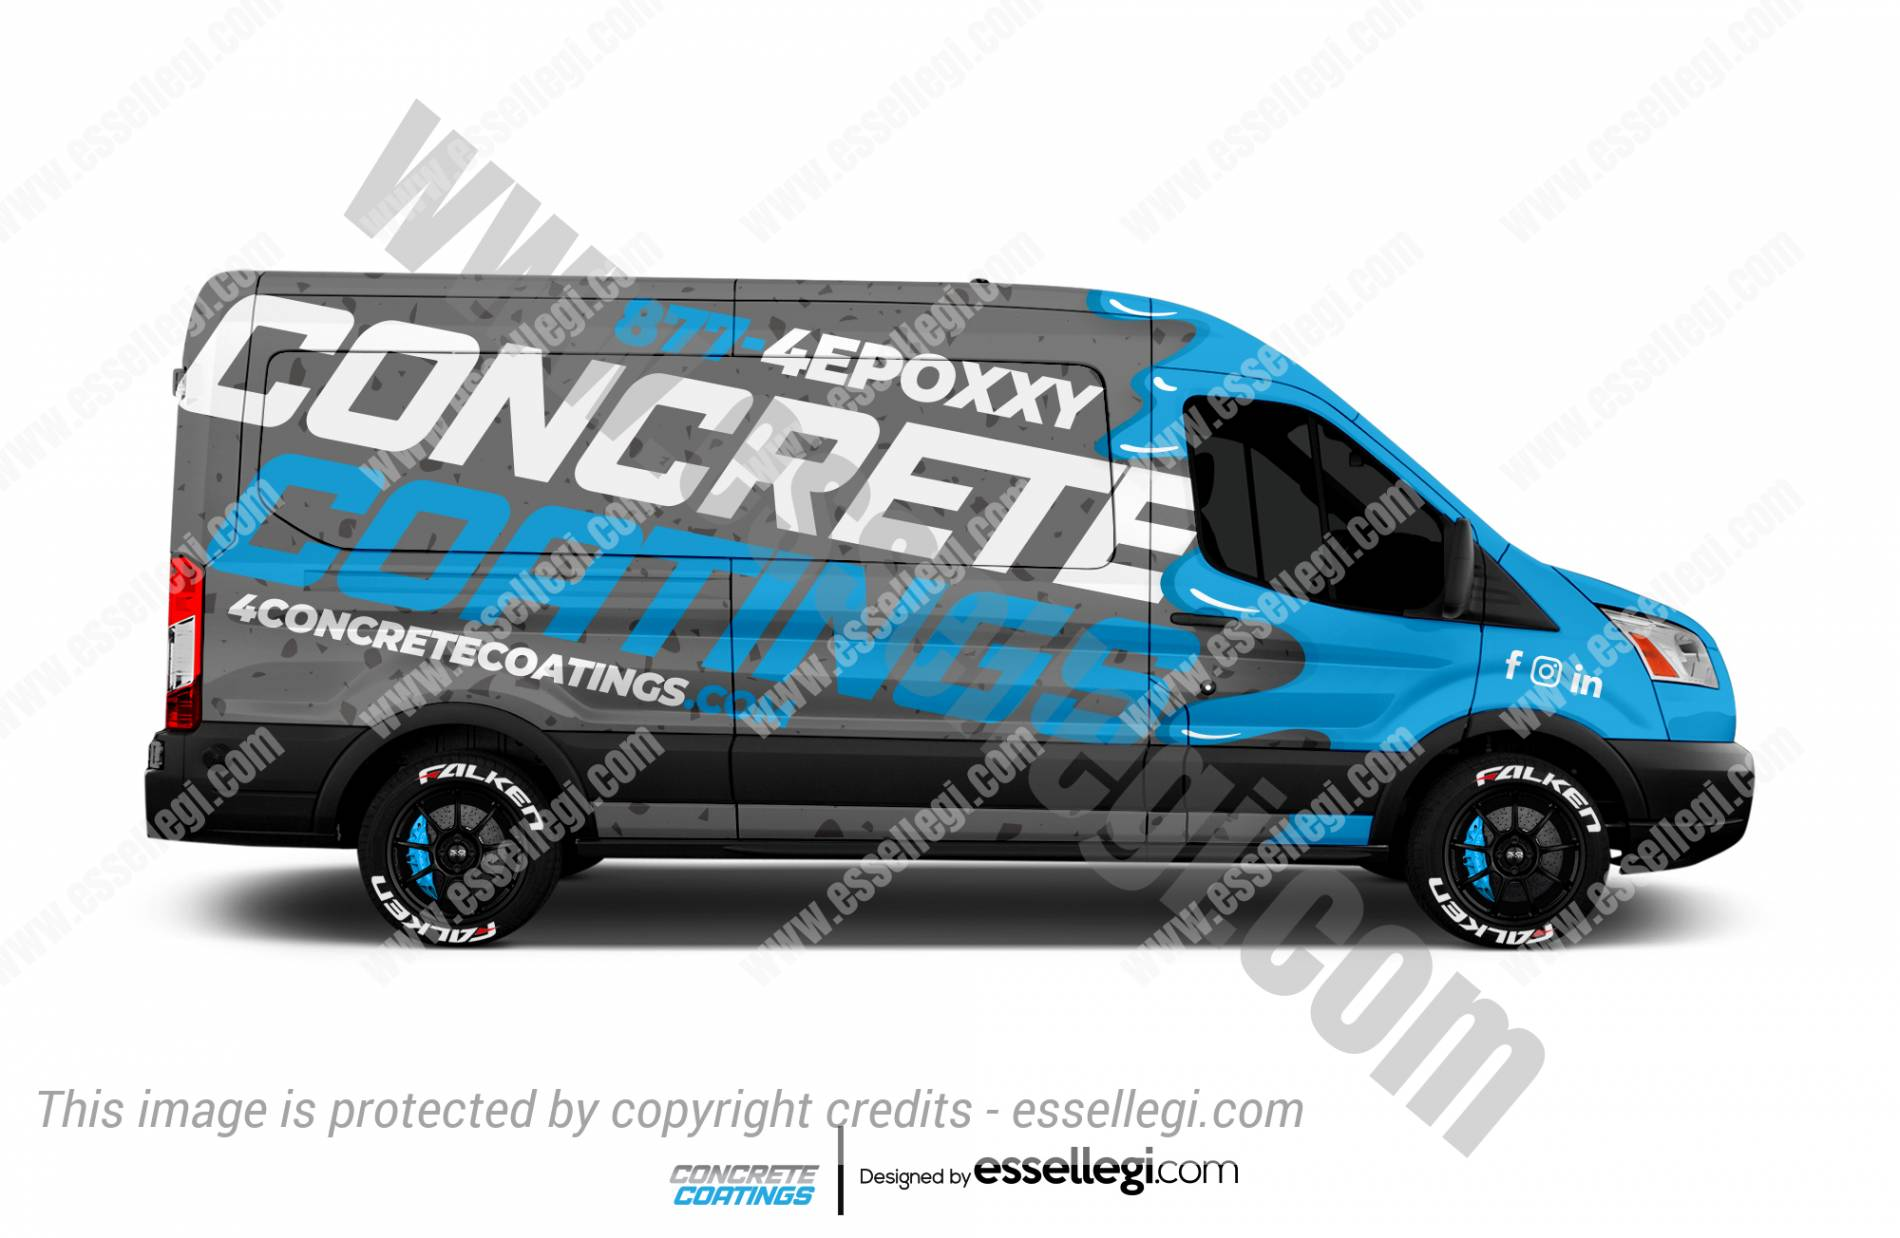 Ford Transit Wrap Design. Ford Transit | Van Wrap Design by Essellegi. Van Signs, Van Signage, Van Wrapping, Van Signwriting, Van Wrap Designer, Signs for Van, Van Logo, Van Graphic by Essellegi.